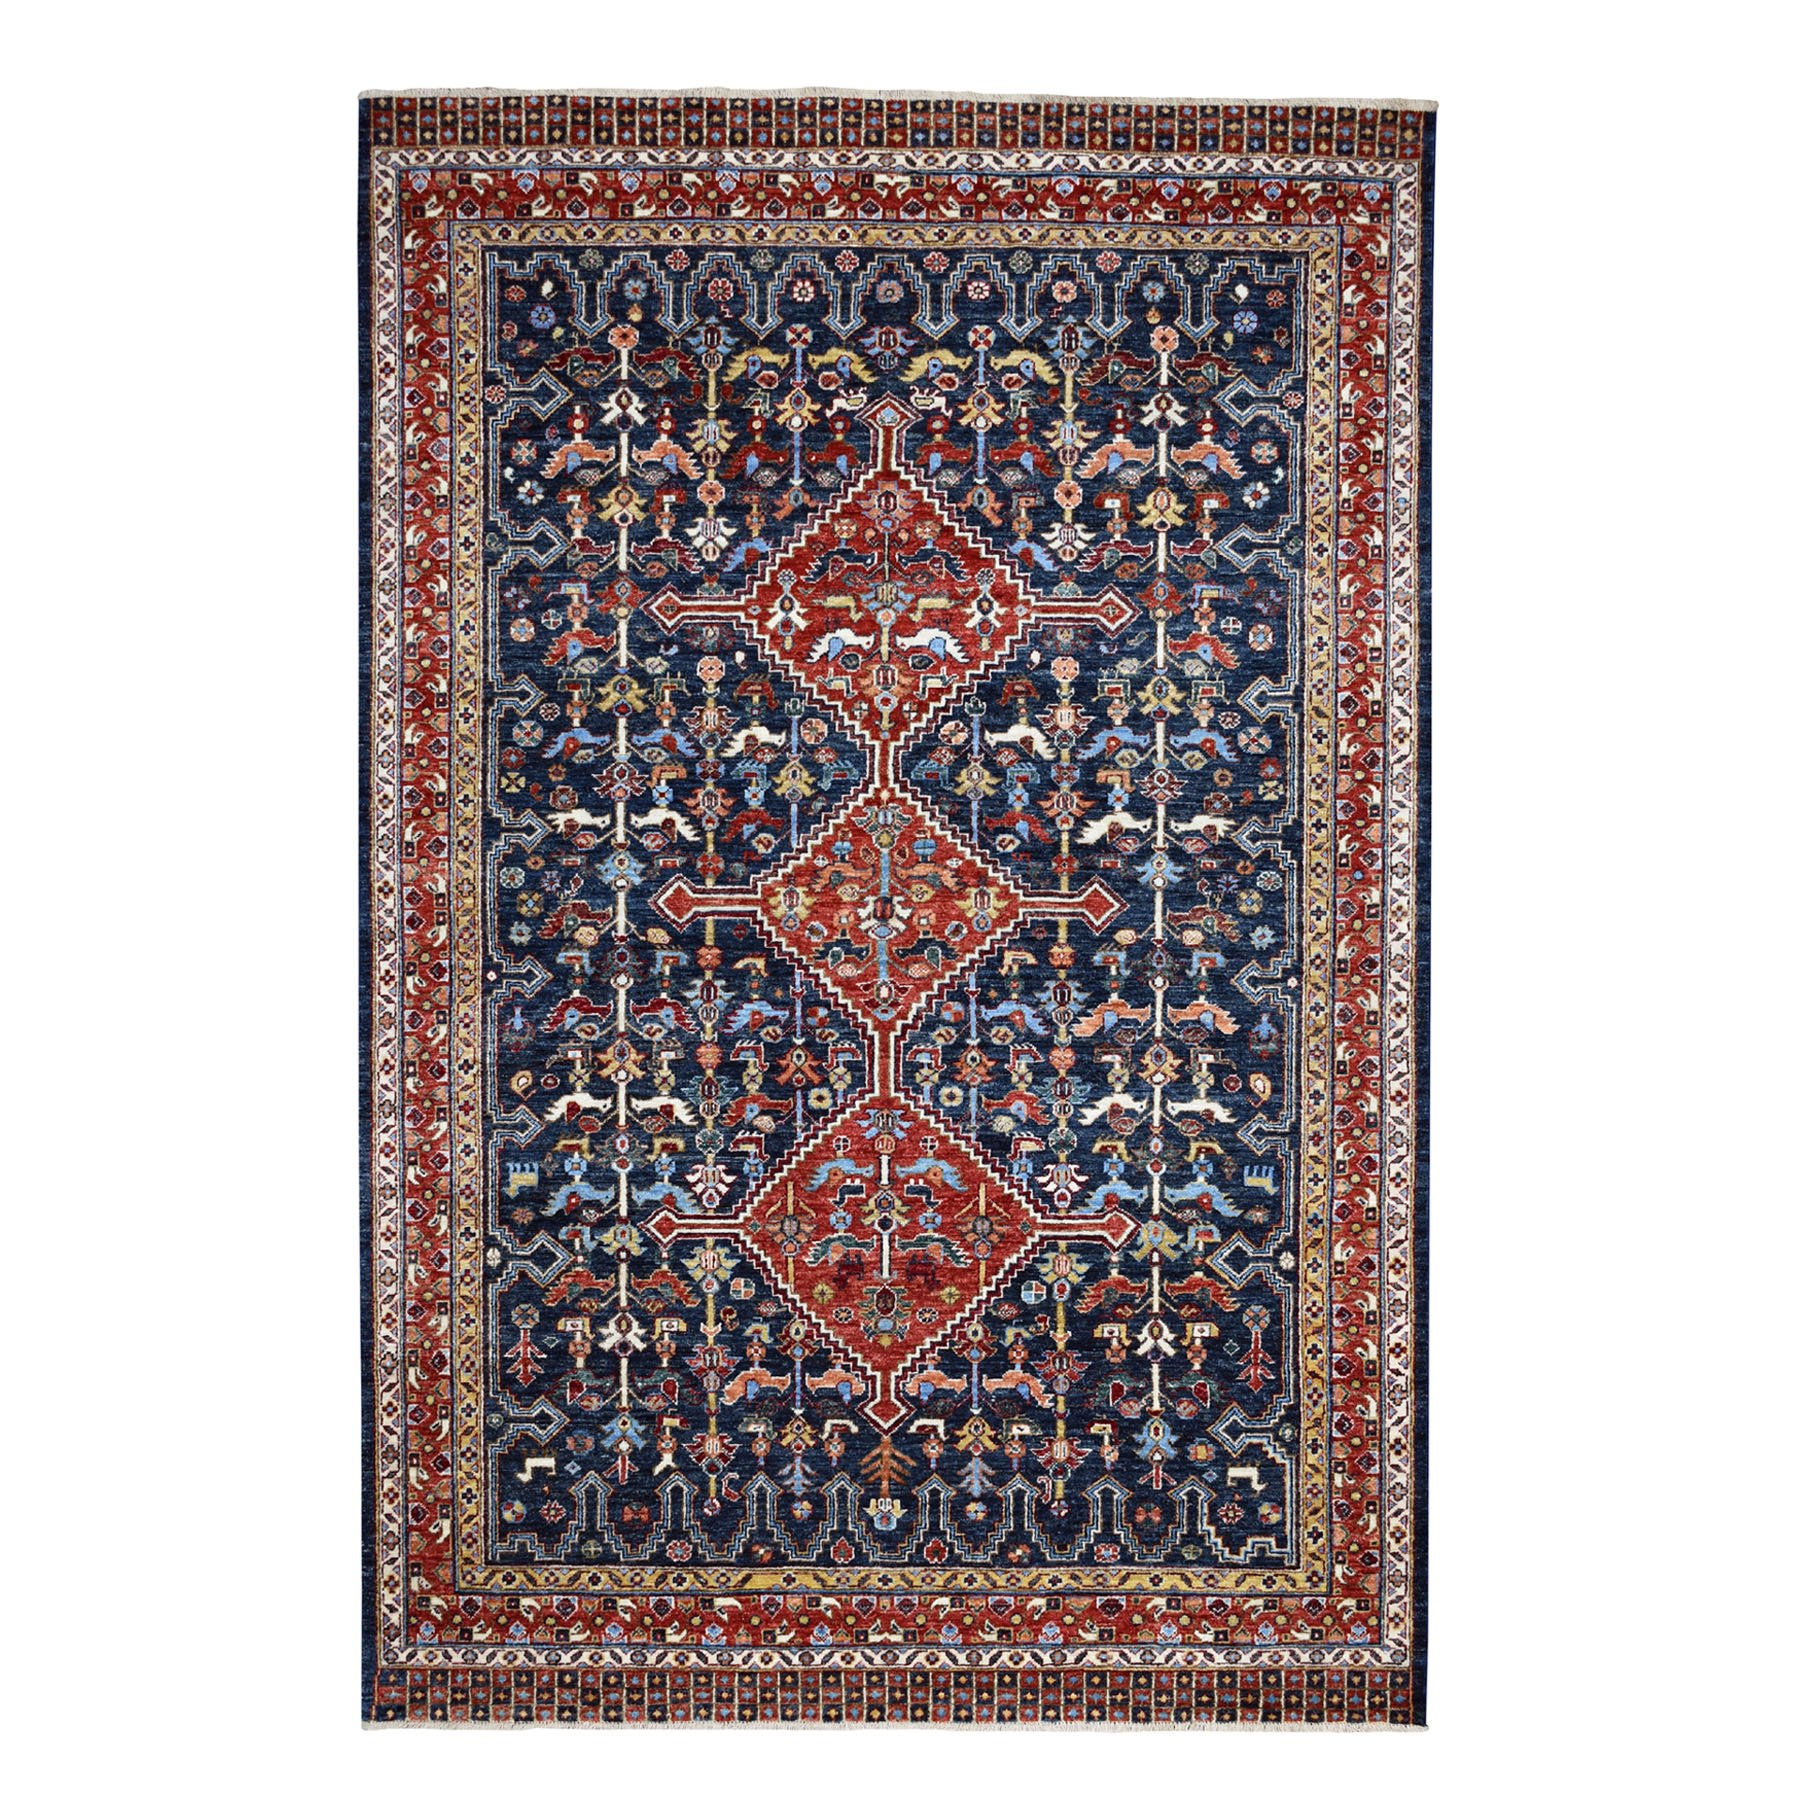 6'x9' Peshawar With Antique Qashqai Design Hand Knotted Pure Wool Oriental Rug